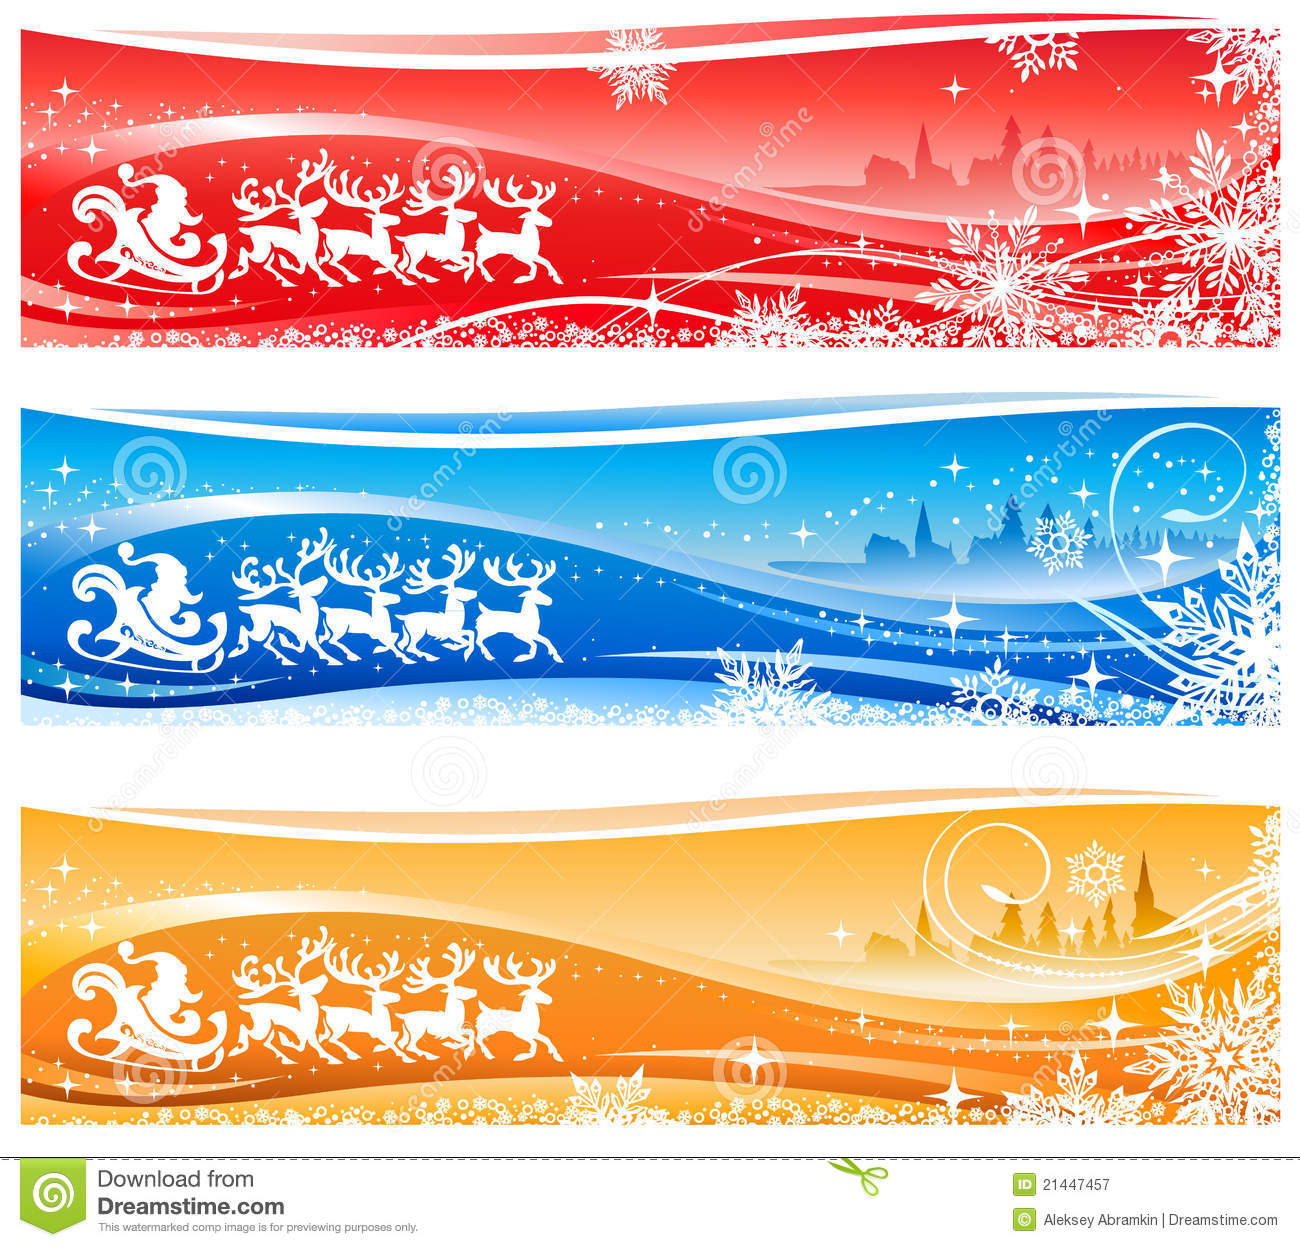 ... Santa Claus flying over a city in his sleigh, reindeers, swirls and